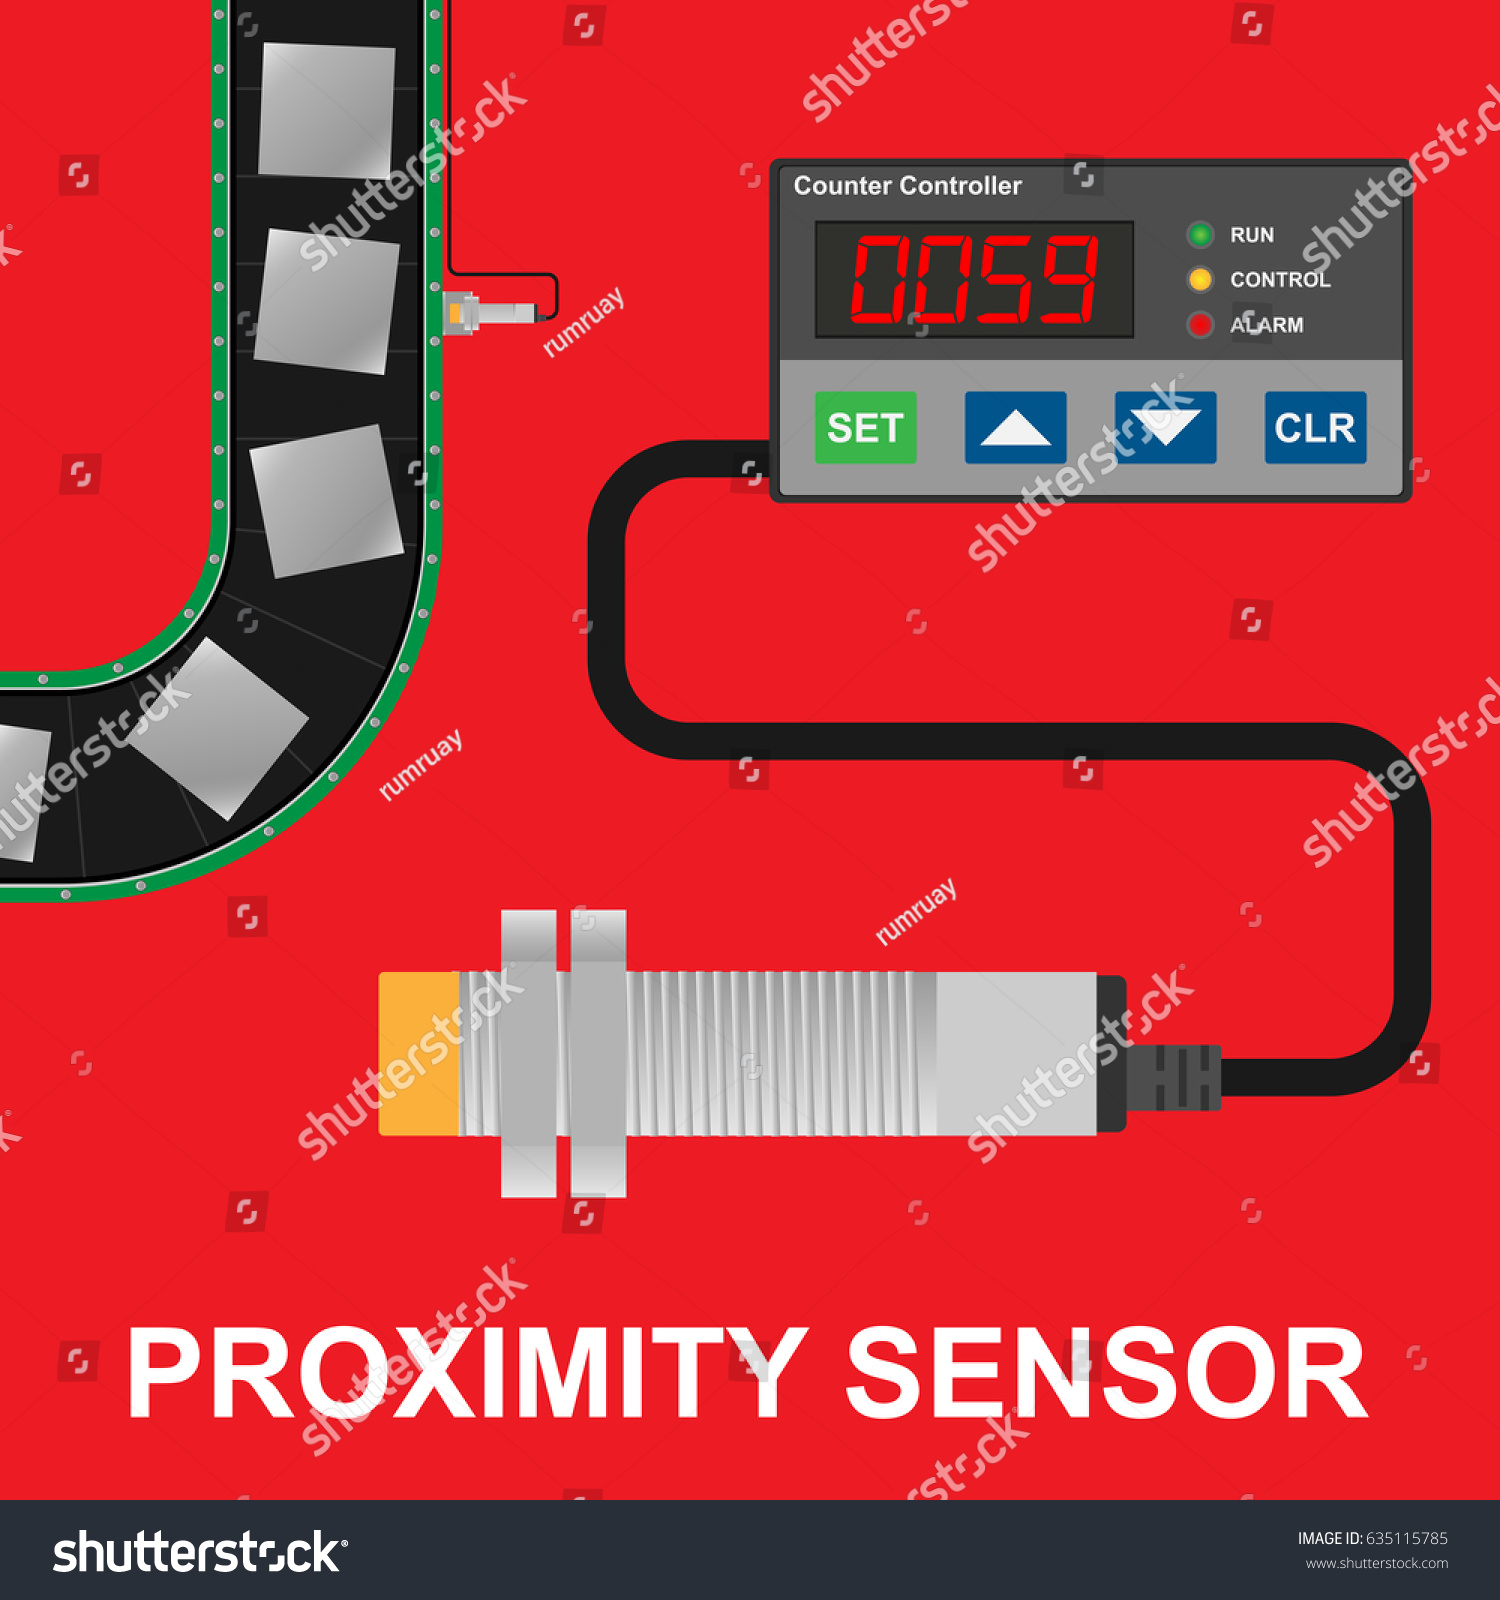 Proximity Sensor Counter Controller Conveyor Belt Stock Vector Switch Wiring Diagram With Production Line